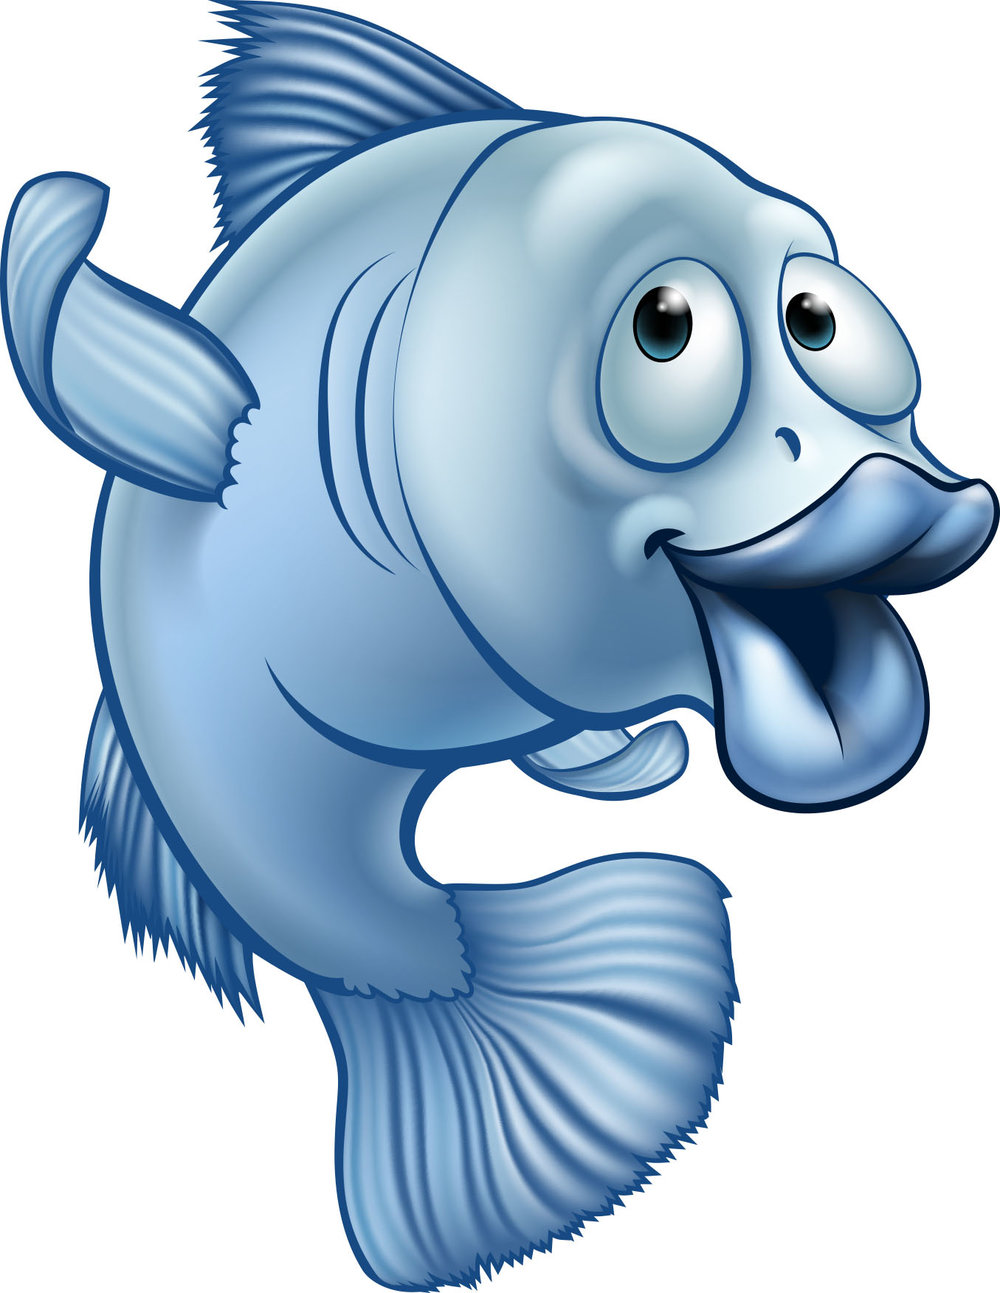 Blue Fish Face.jpg